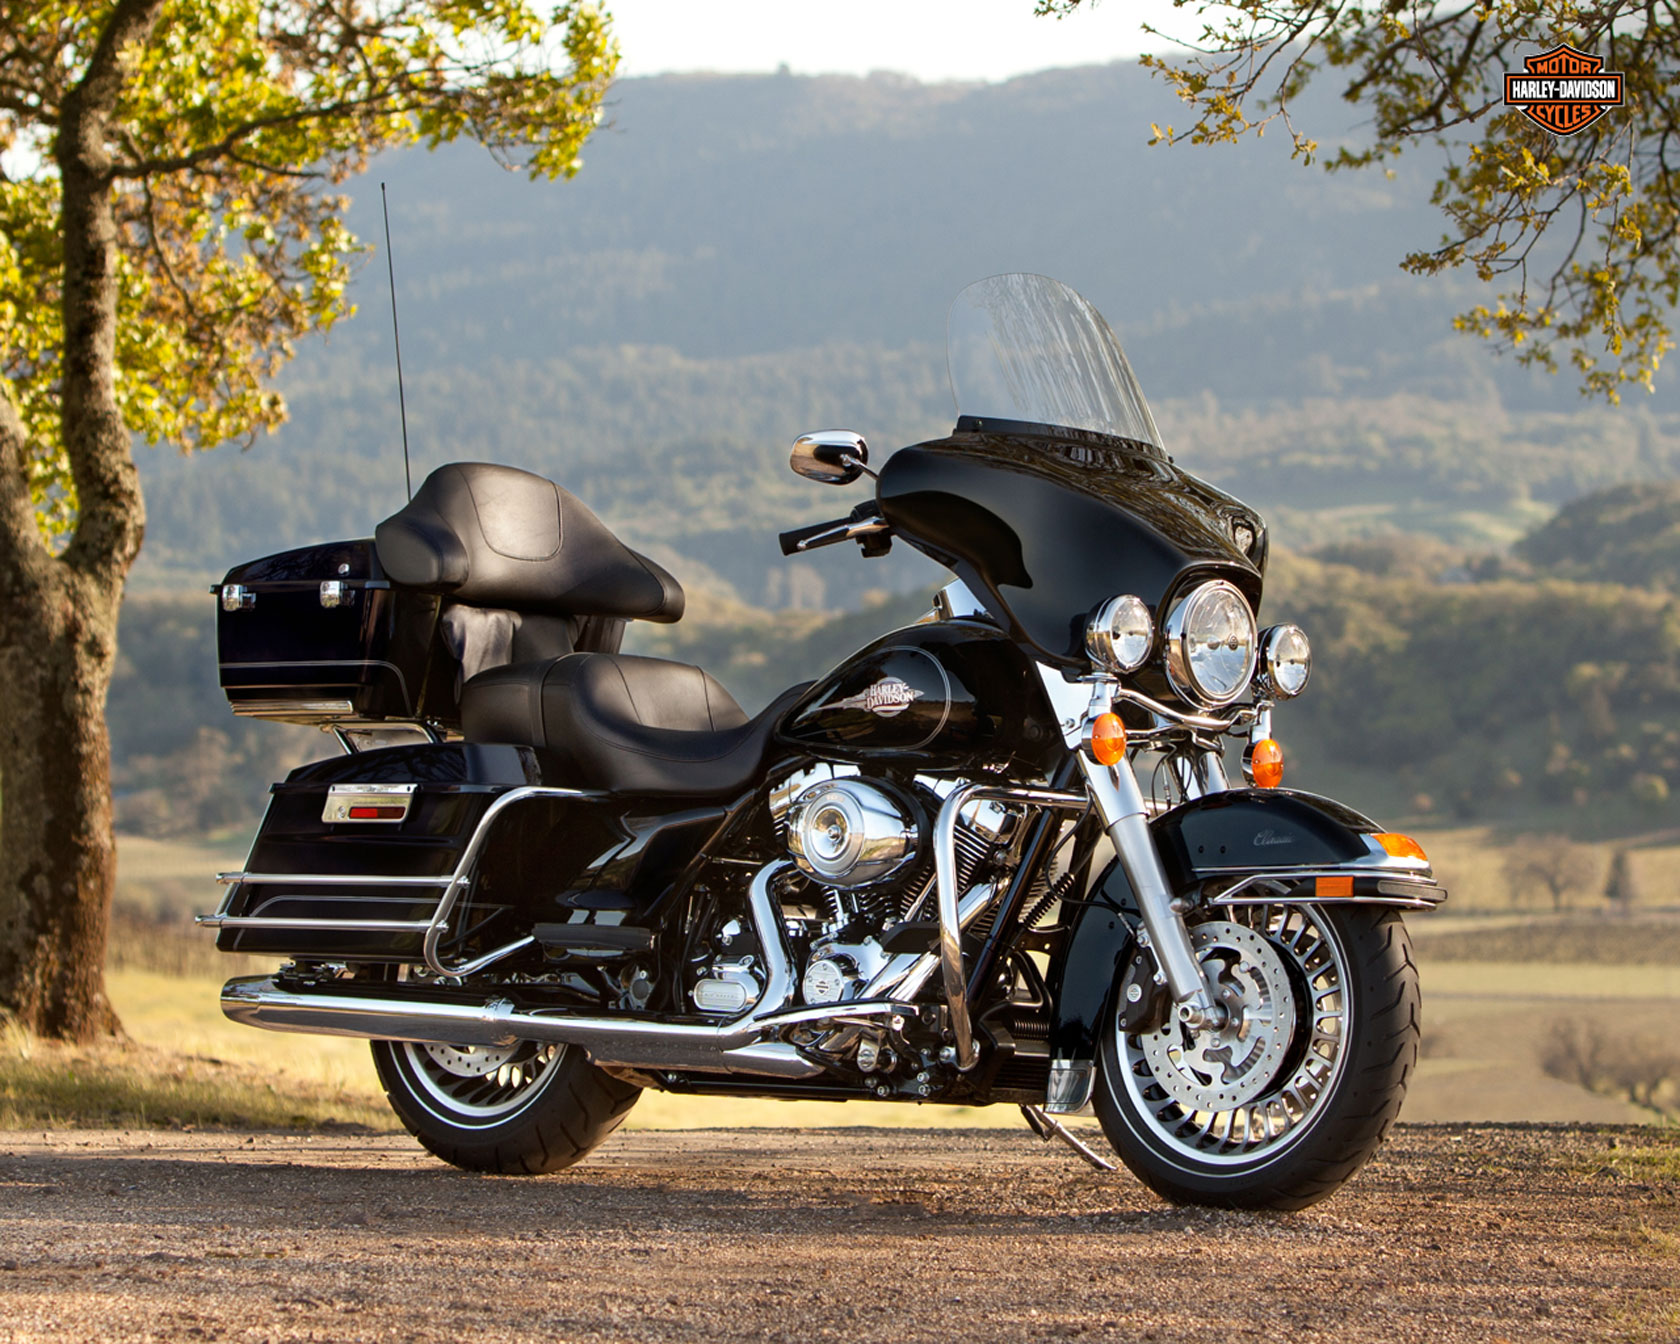 Harley-Davidson FLHTC Electra Glide Classic 2008 #1